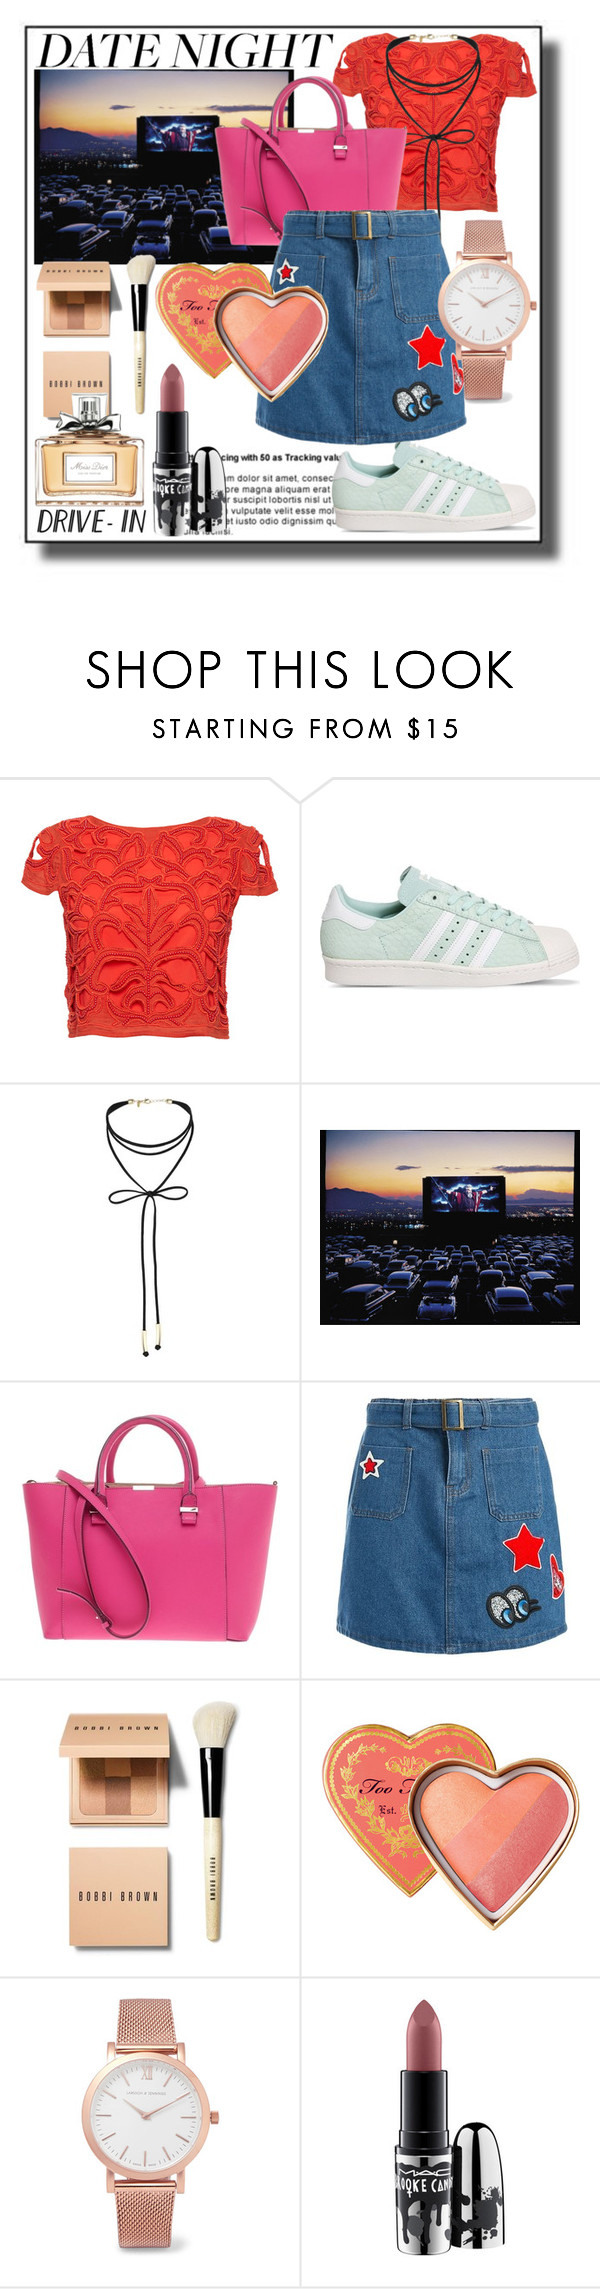 """""""summer date: date night drive in"""" by vikapranika ❤ liked on Polyvore featuring Alice + Olivia, adidas, Miss Selfridge, Victoria Beckham, Sans Souci, Bobbi Brown Cosmetics, Larsson & Jennings, MAC Cosmetics and Christian Dior"""